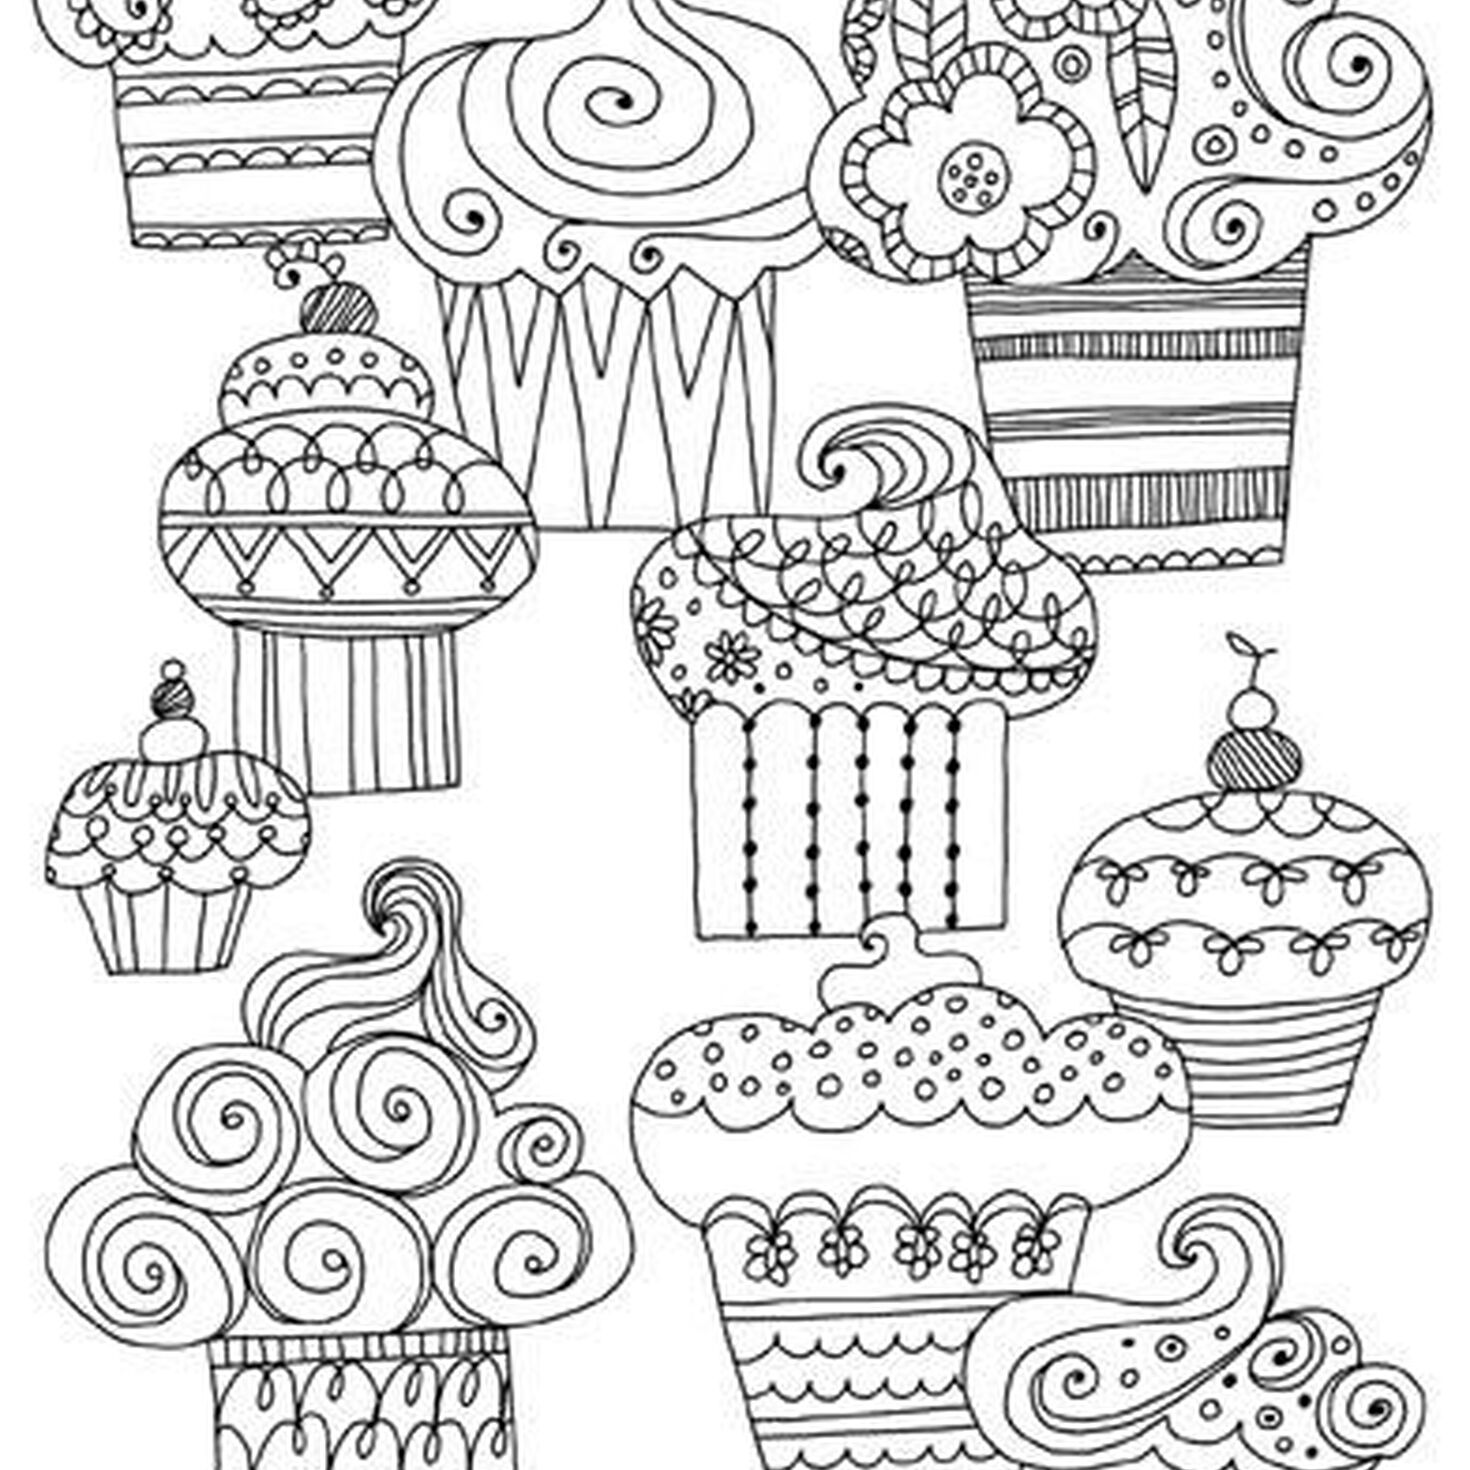 Sweet treats just because coloring card greeting cards for Sweet treats coloring pages